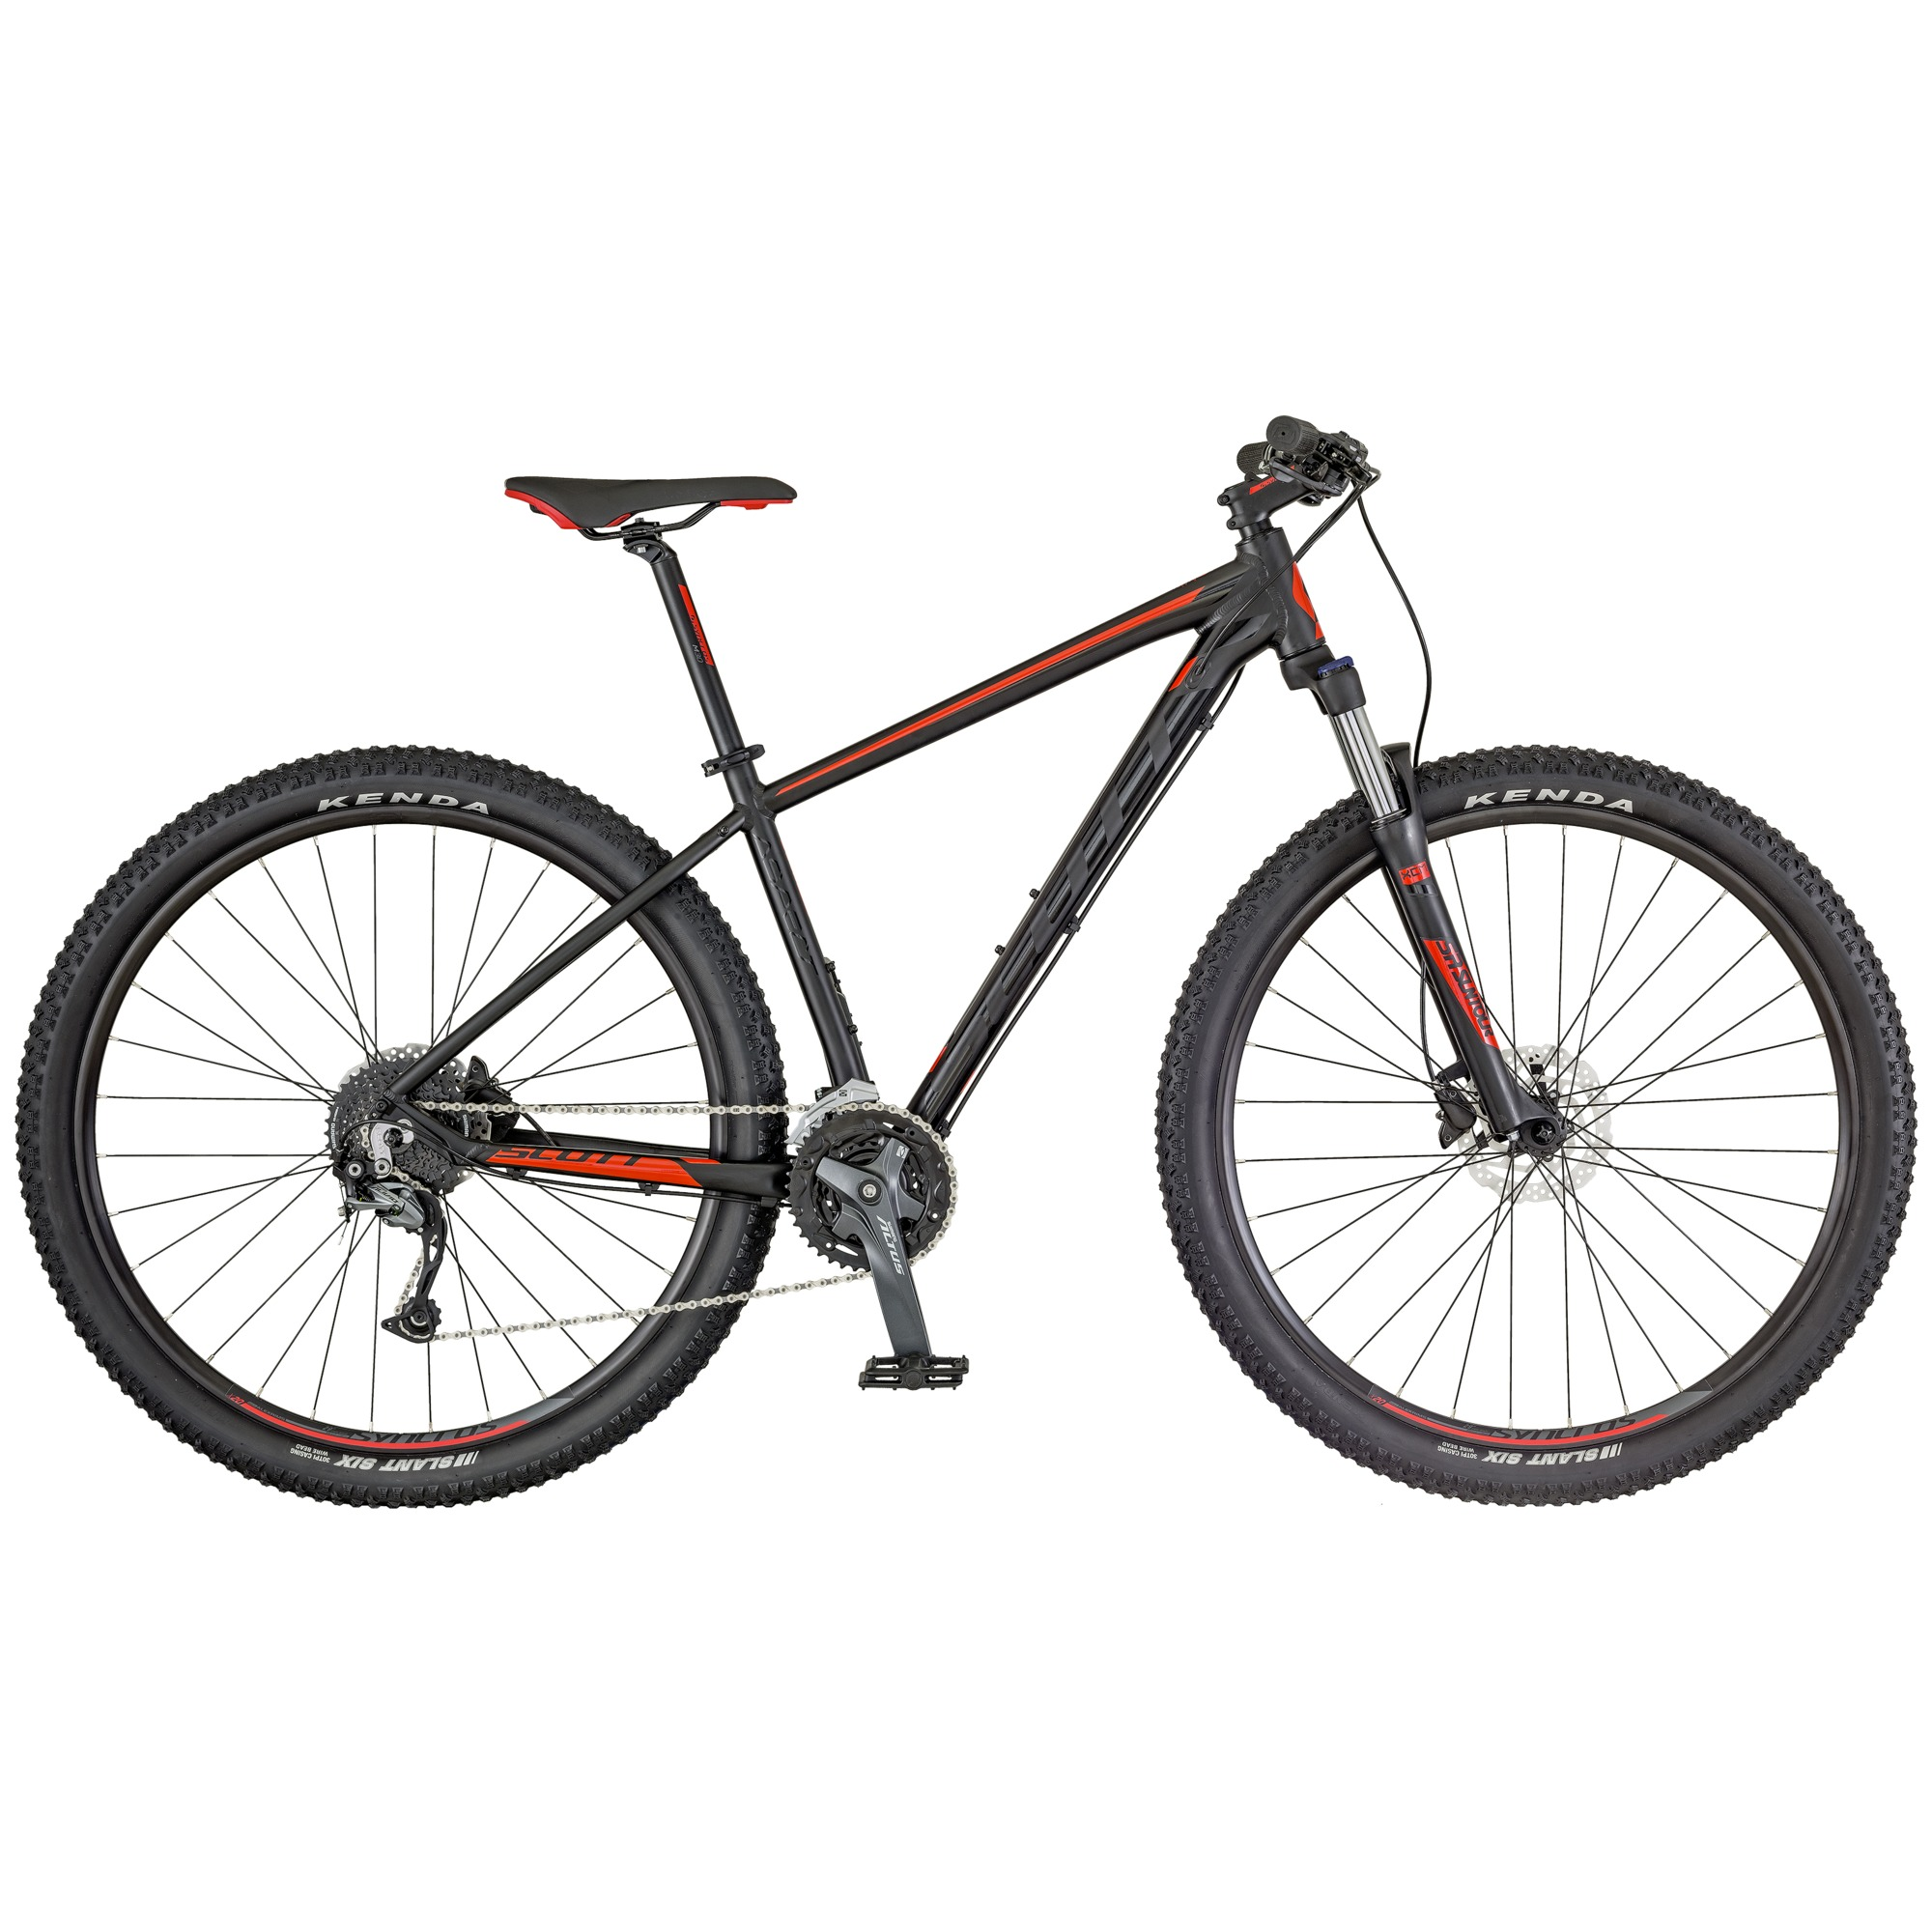 SCOTT Aspect 740 black/red Bike